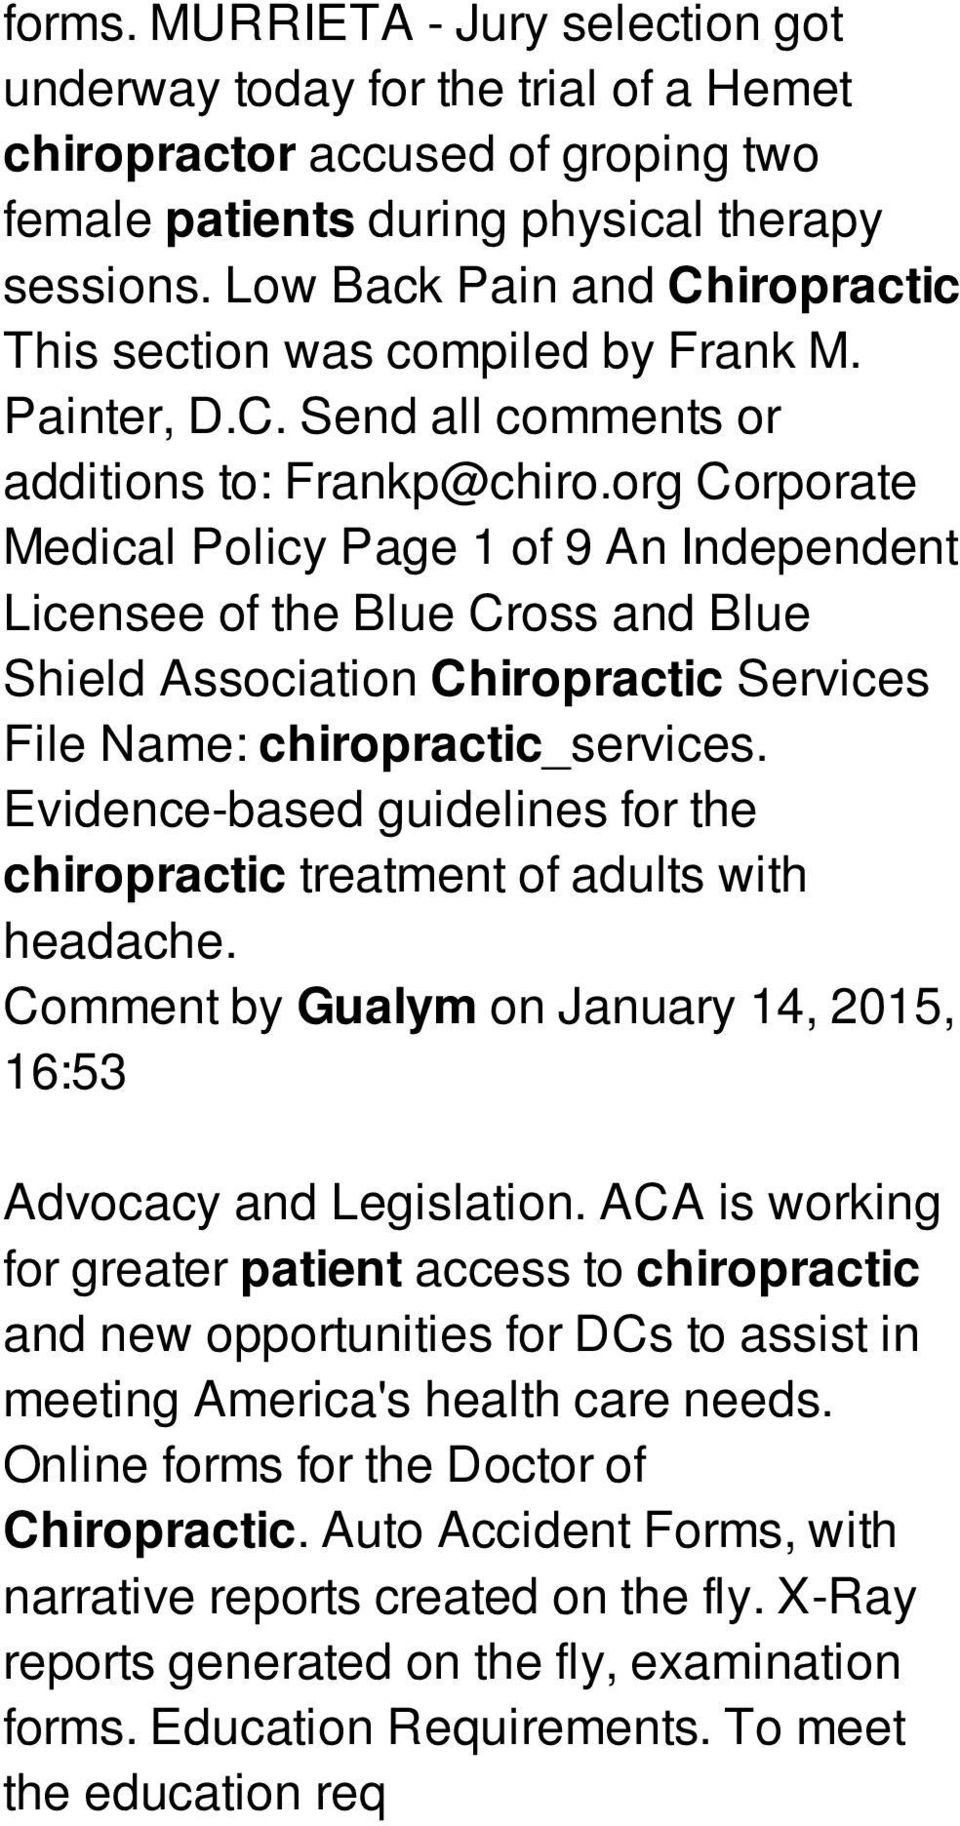 org Corporate Medical Policy Page 1 of 9 An Independent Licensee of the Blue Cross and Blue Shield Association Chiropractic Services File Name: chiropractic_services.